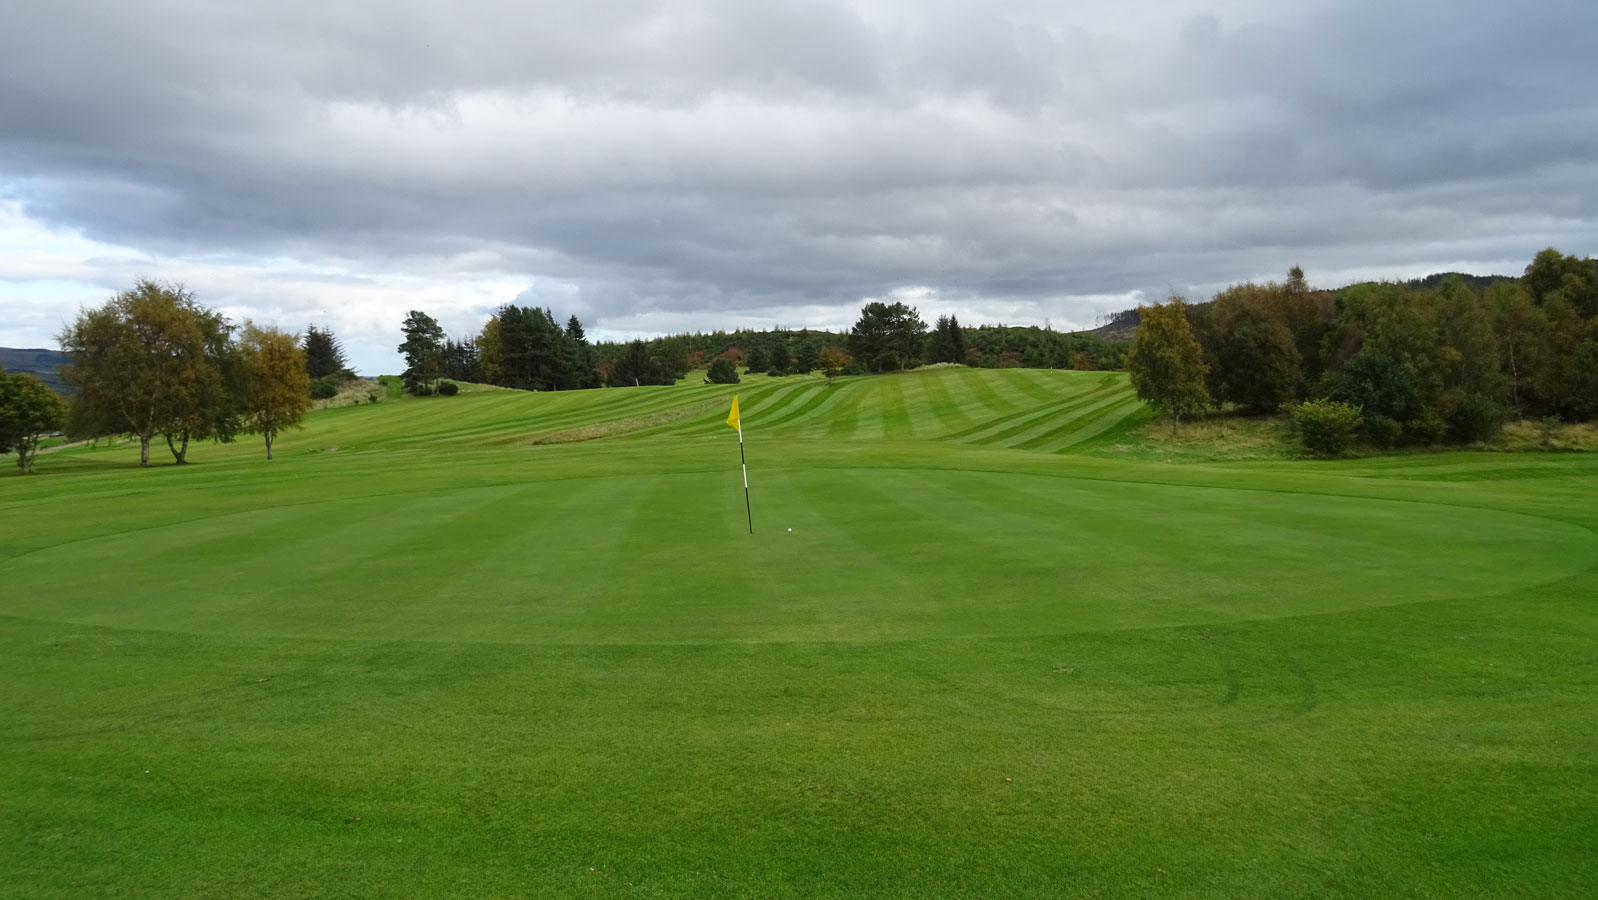 Strathpeffer Spa Golf Club, 13th hole and 15th Fairway